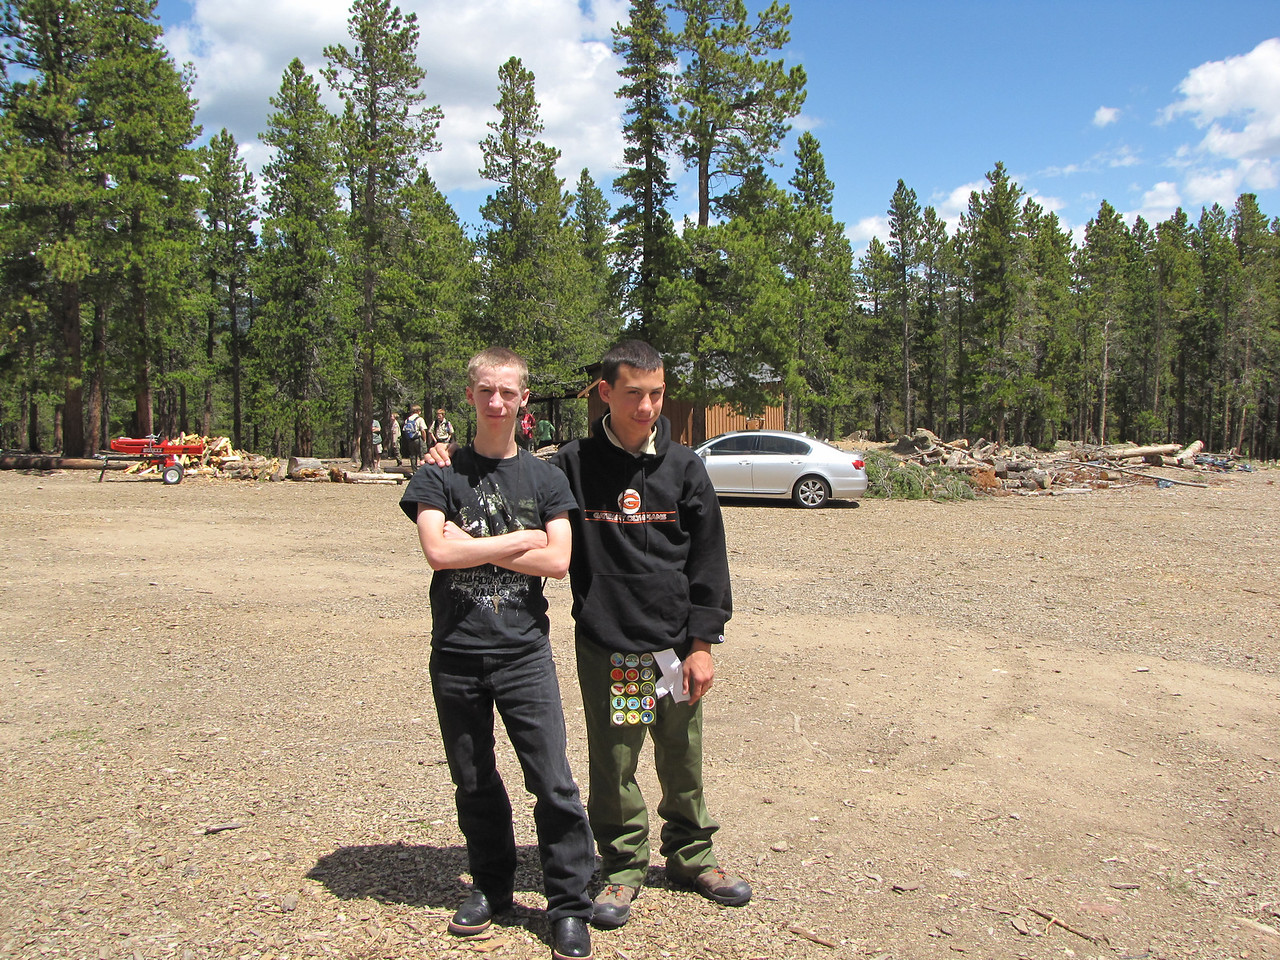 Tony and Sean at the Boy Scout Camp